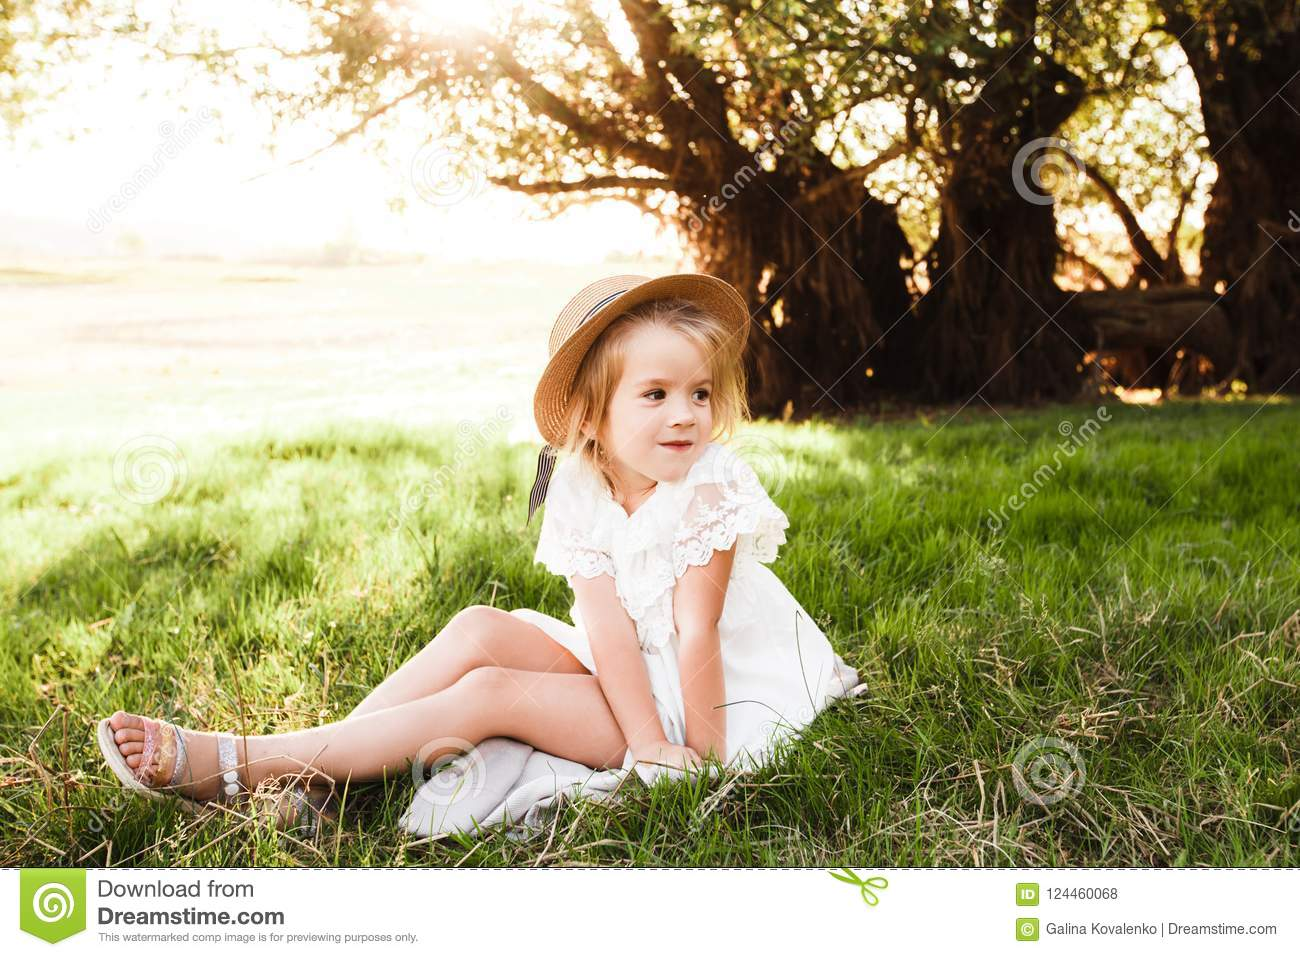 760715561465 A Cute Baby Girl In A Straw Hat And White Dress Is Sitting On The ...